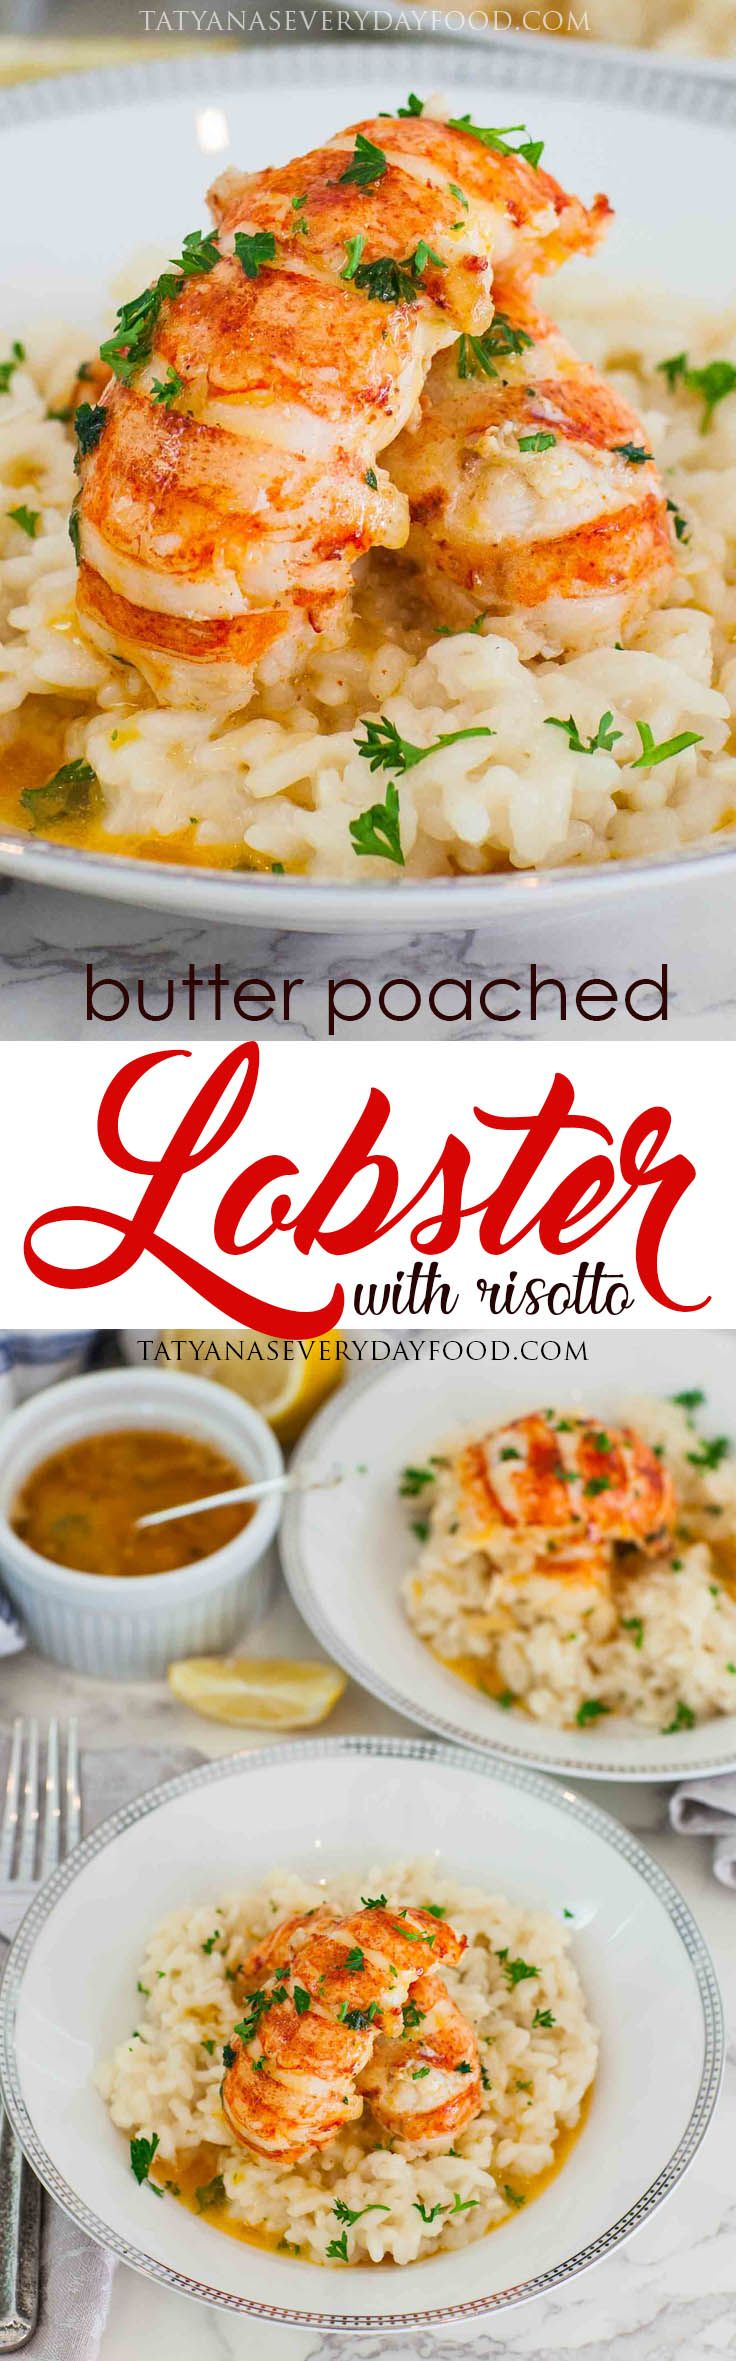 Butter Poached Lobster with Simple Risotto - Tatyanas Everyday Food